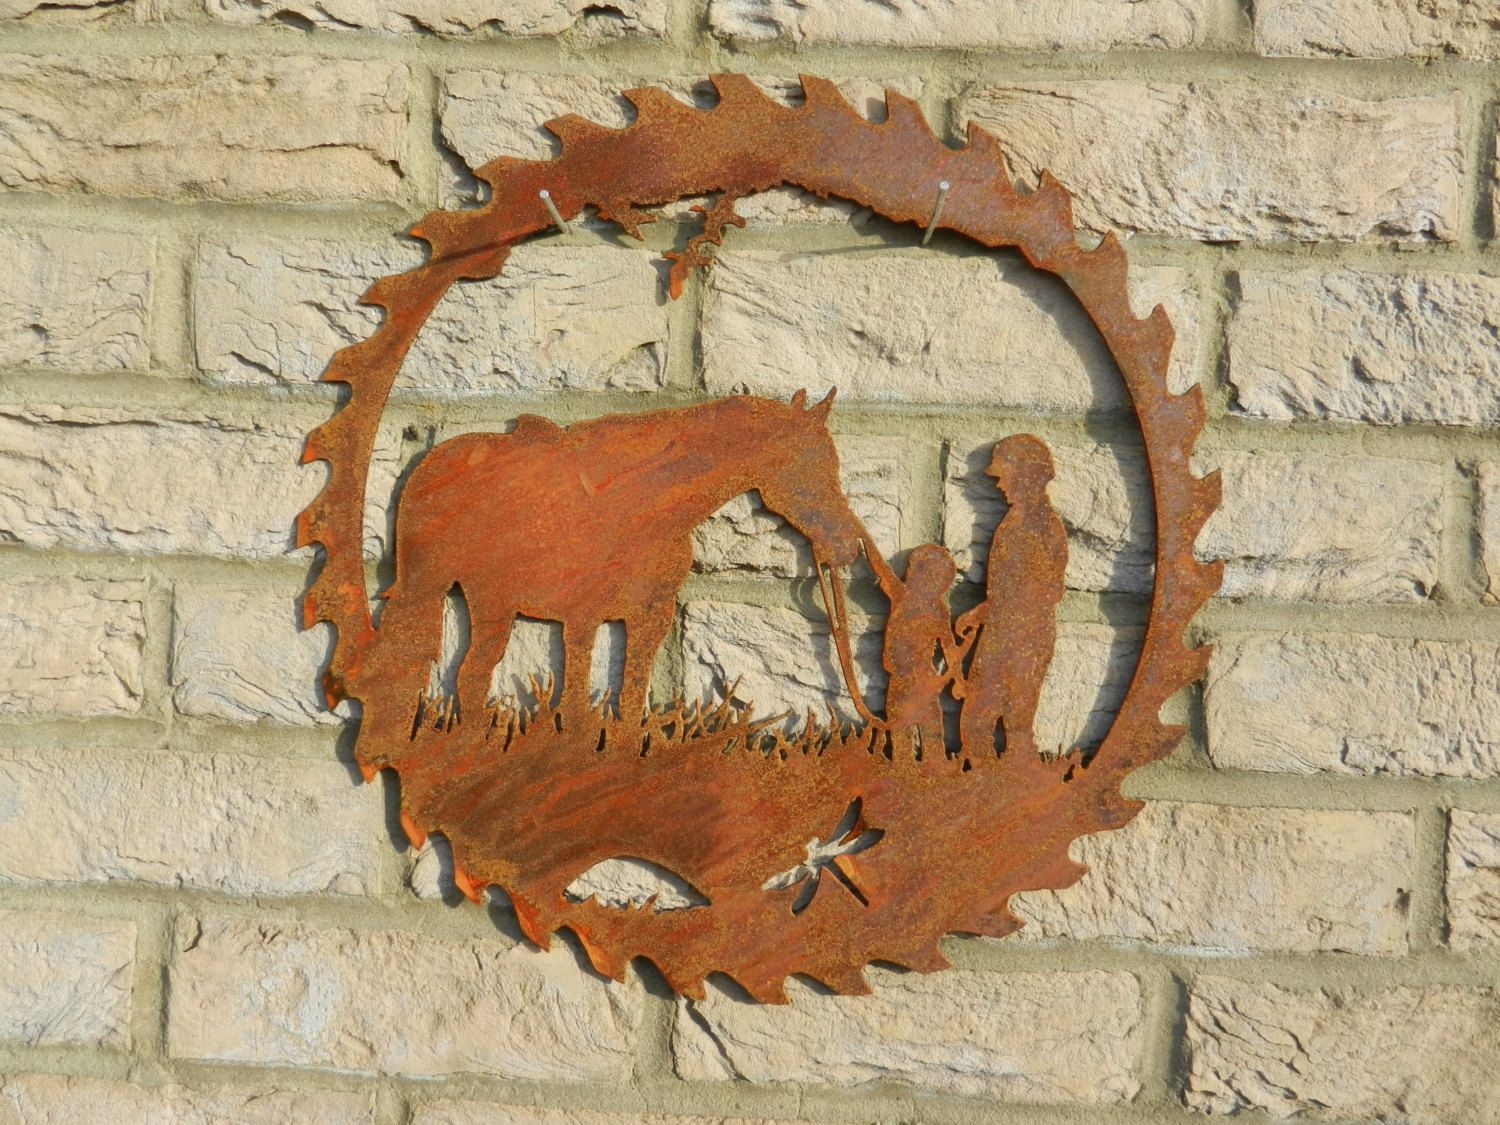 Horse Circular Saw Blade Art / Rusty Metal Art / Garden Decoration / Horse  Gift / Horse Rider / Horse Wall Decor / Equine Art / Jockey Gift